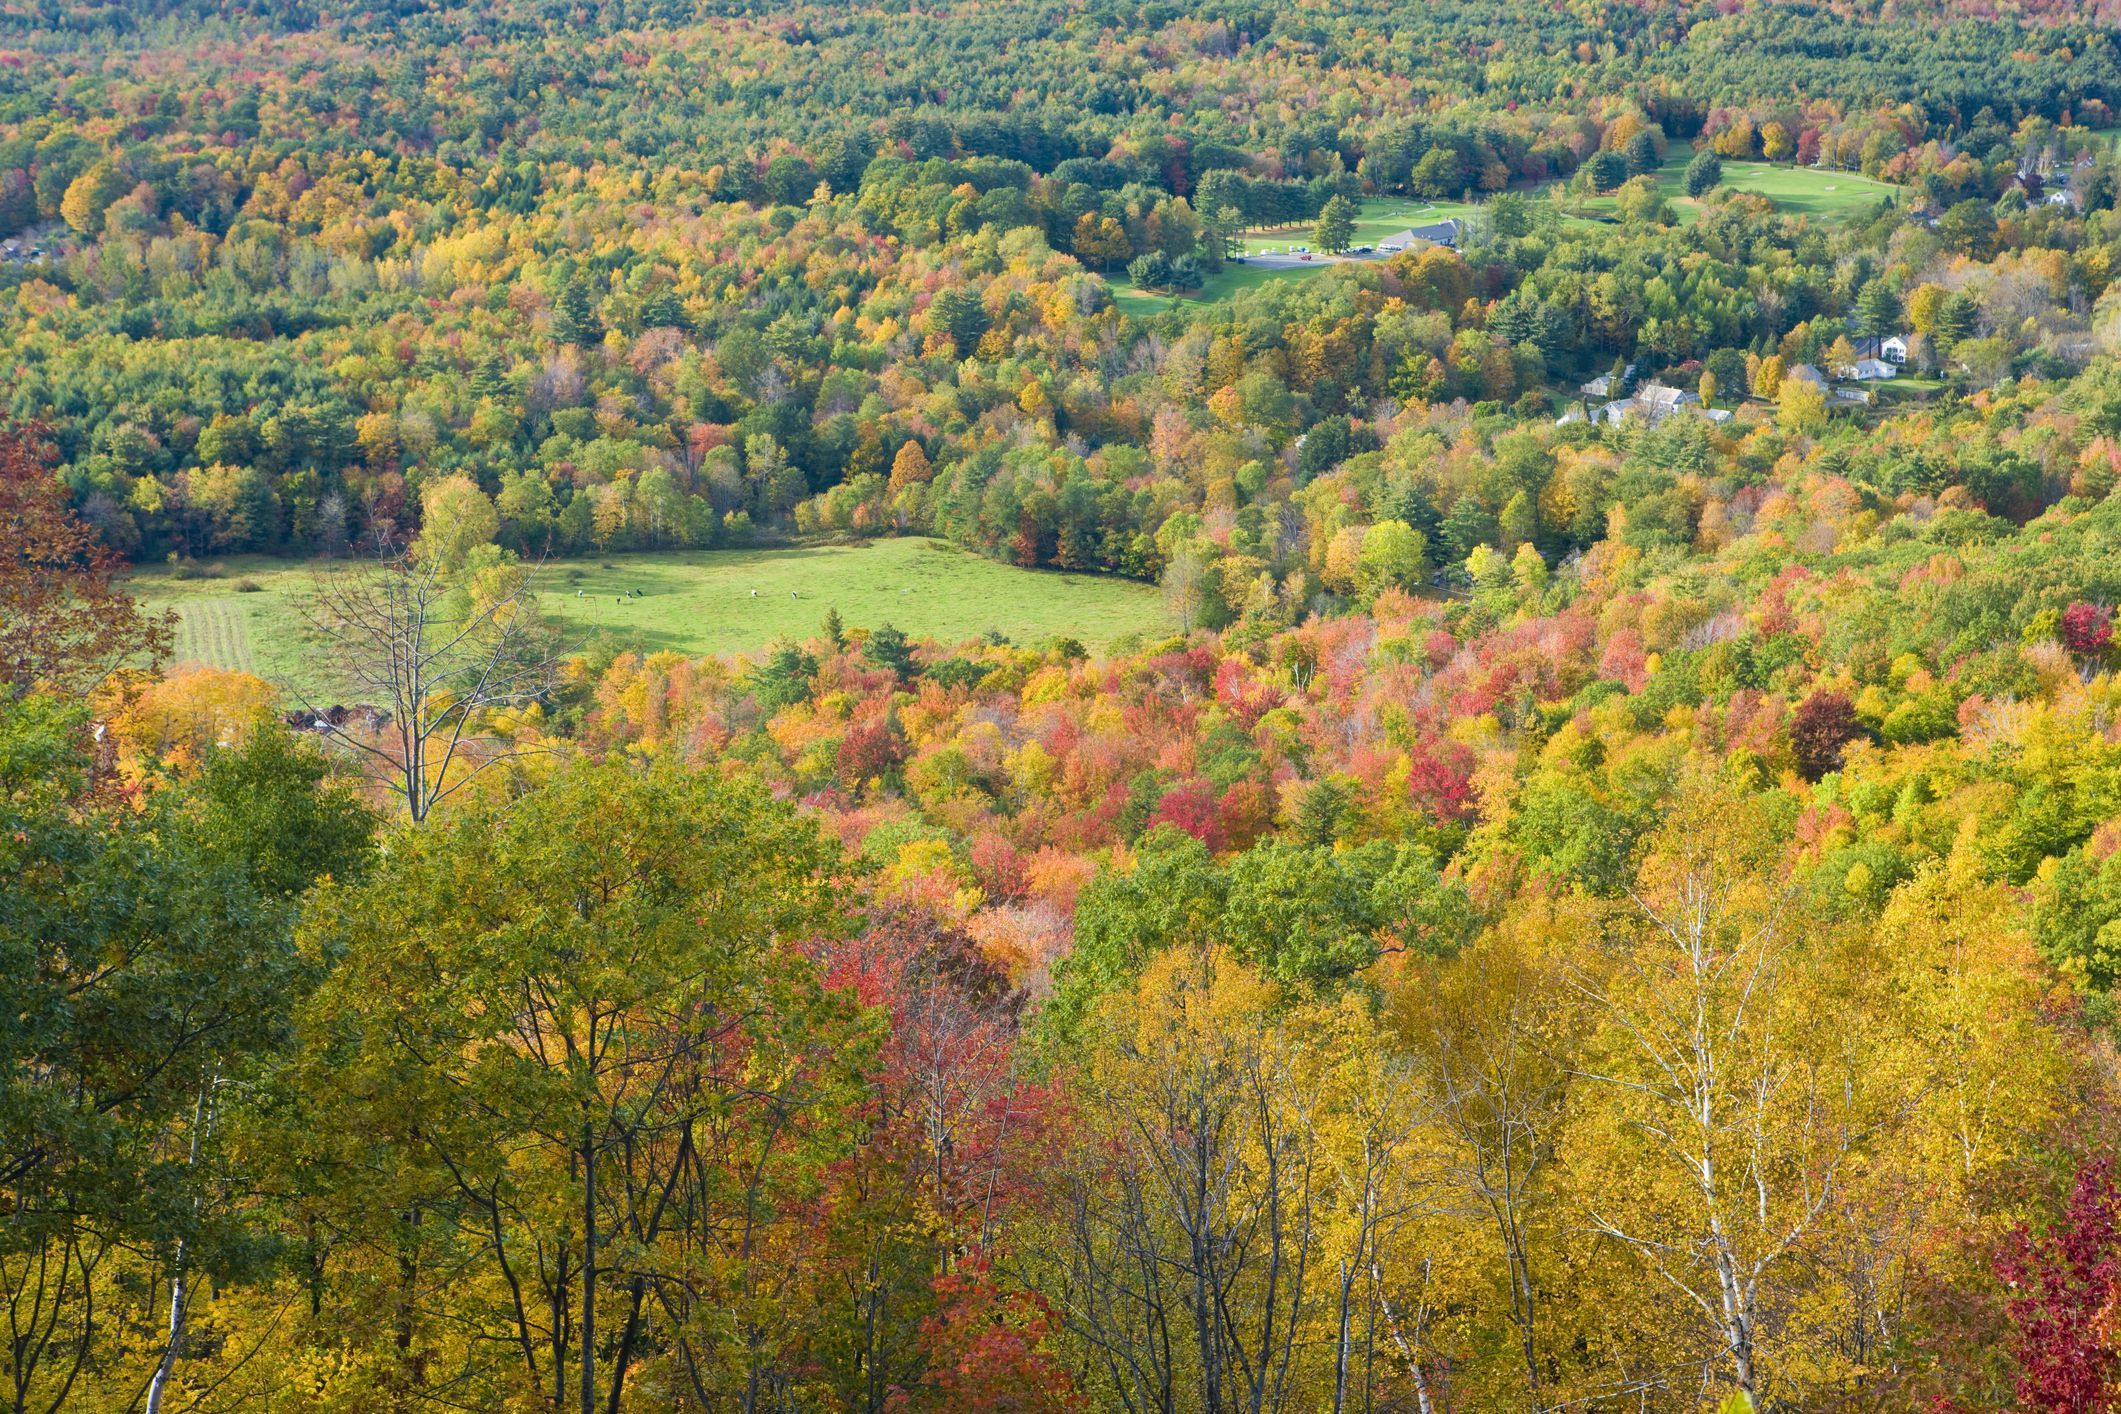 Fall in New England as seen from Mohawk Trail, Florida, Massachusetts